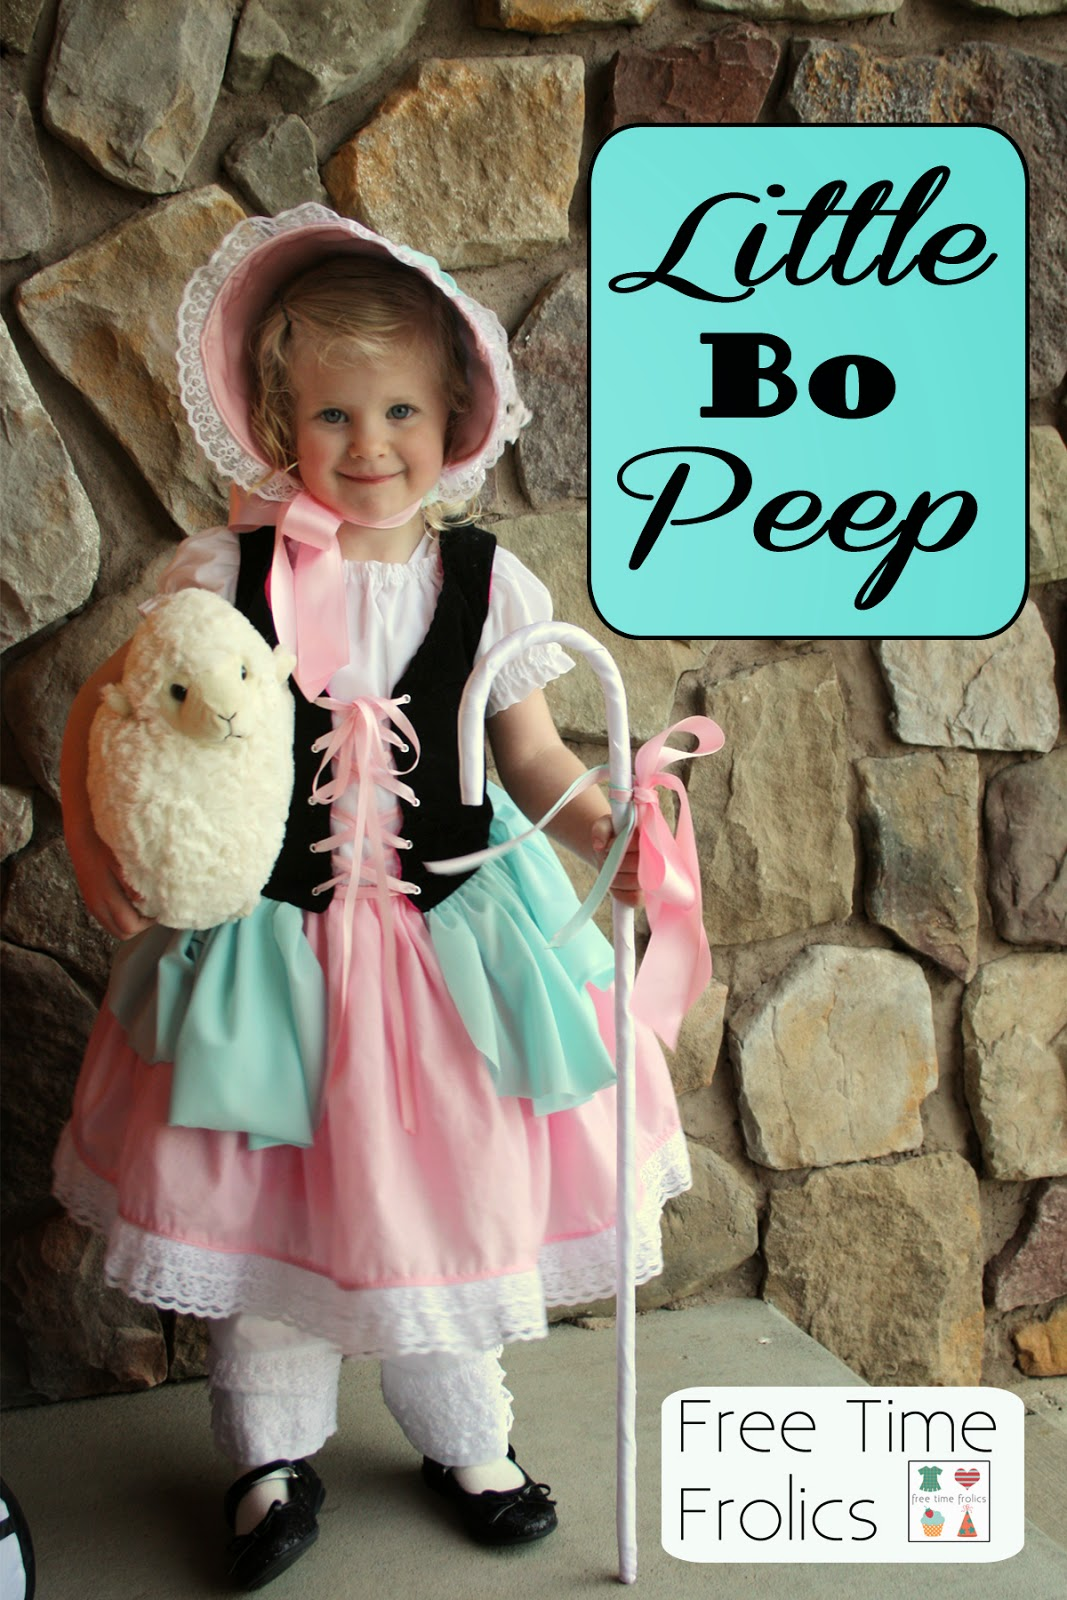 Little Bo Peep Costume Inspiration www.freetimefrolics.com